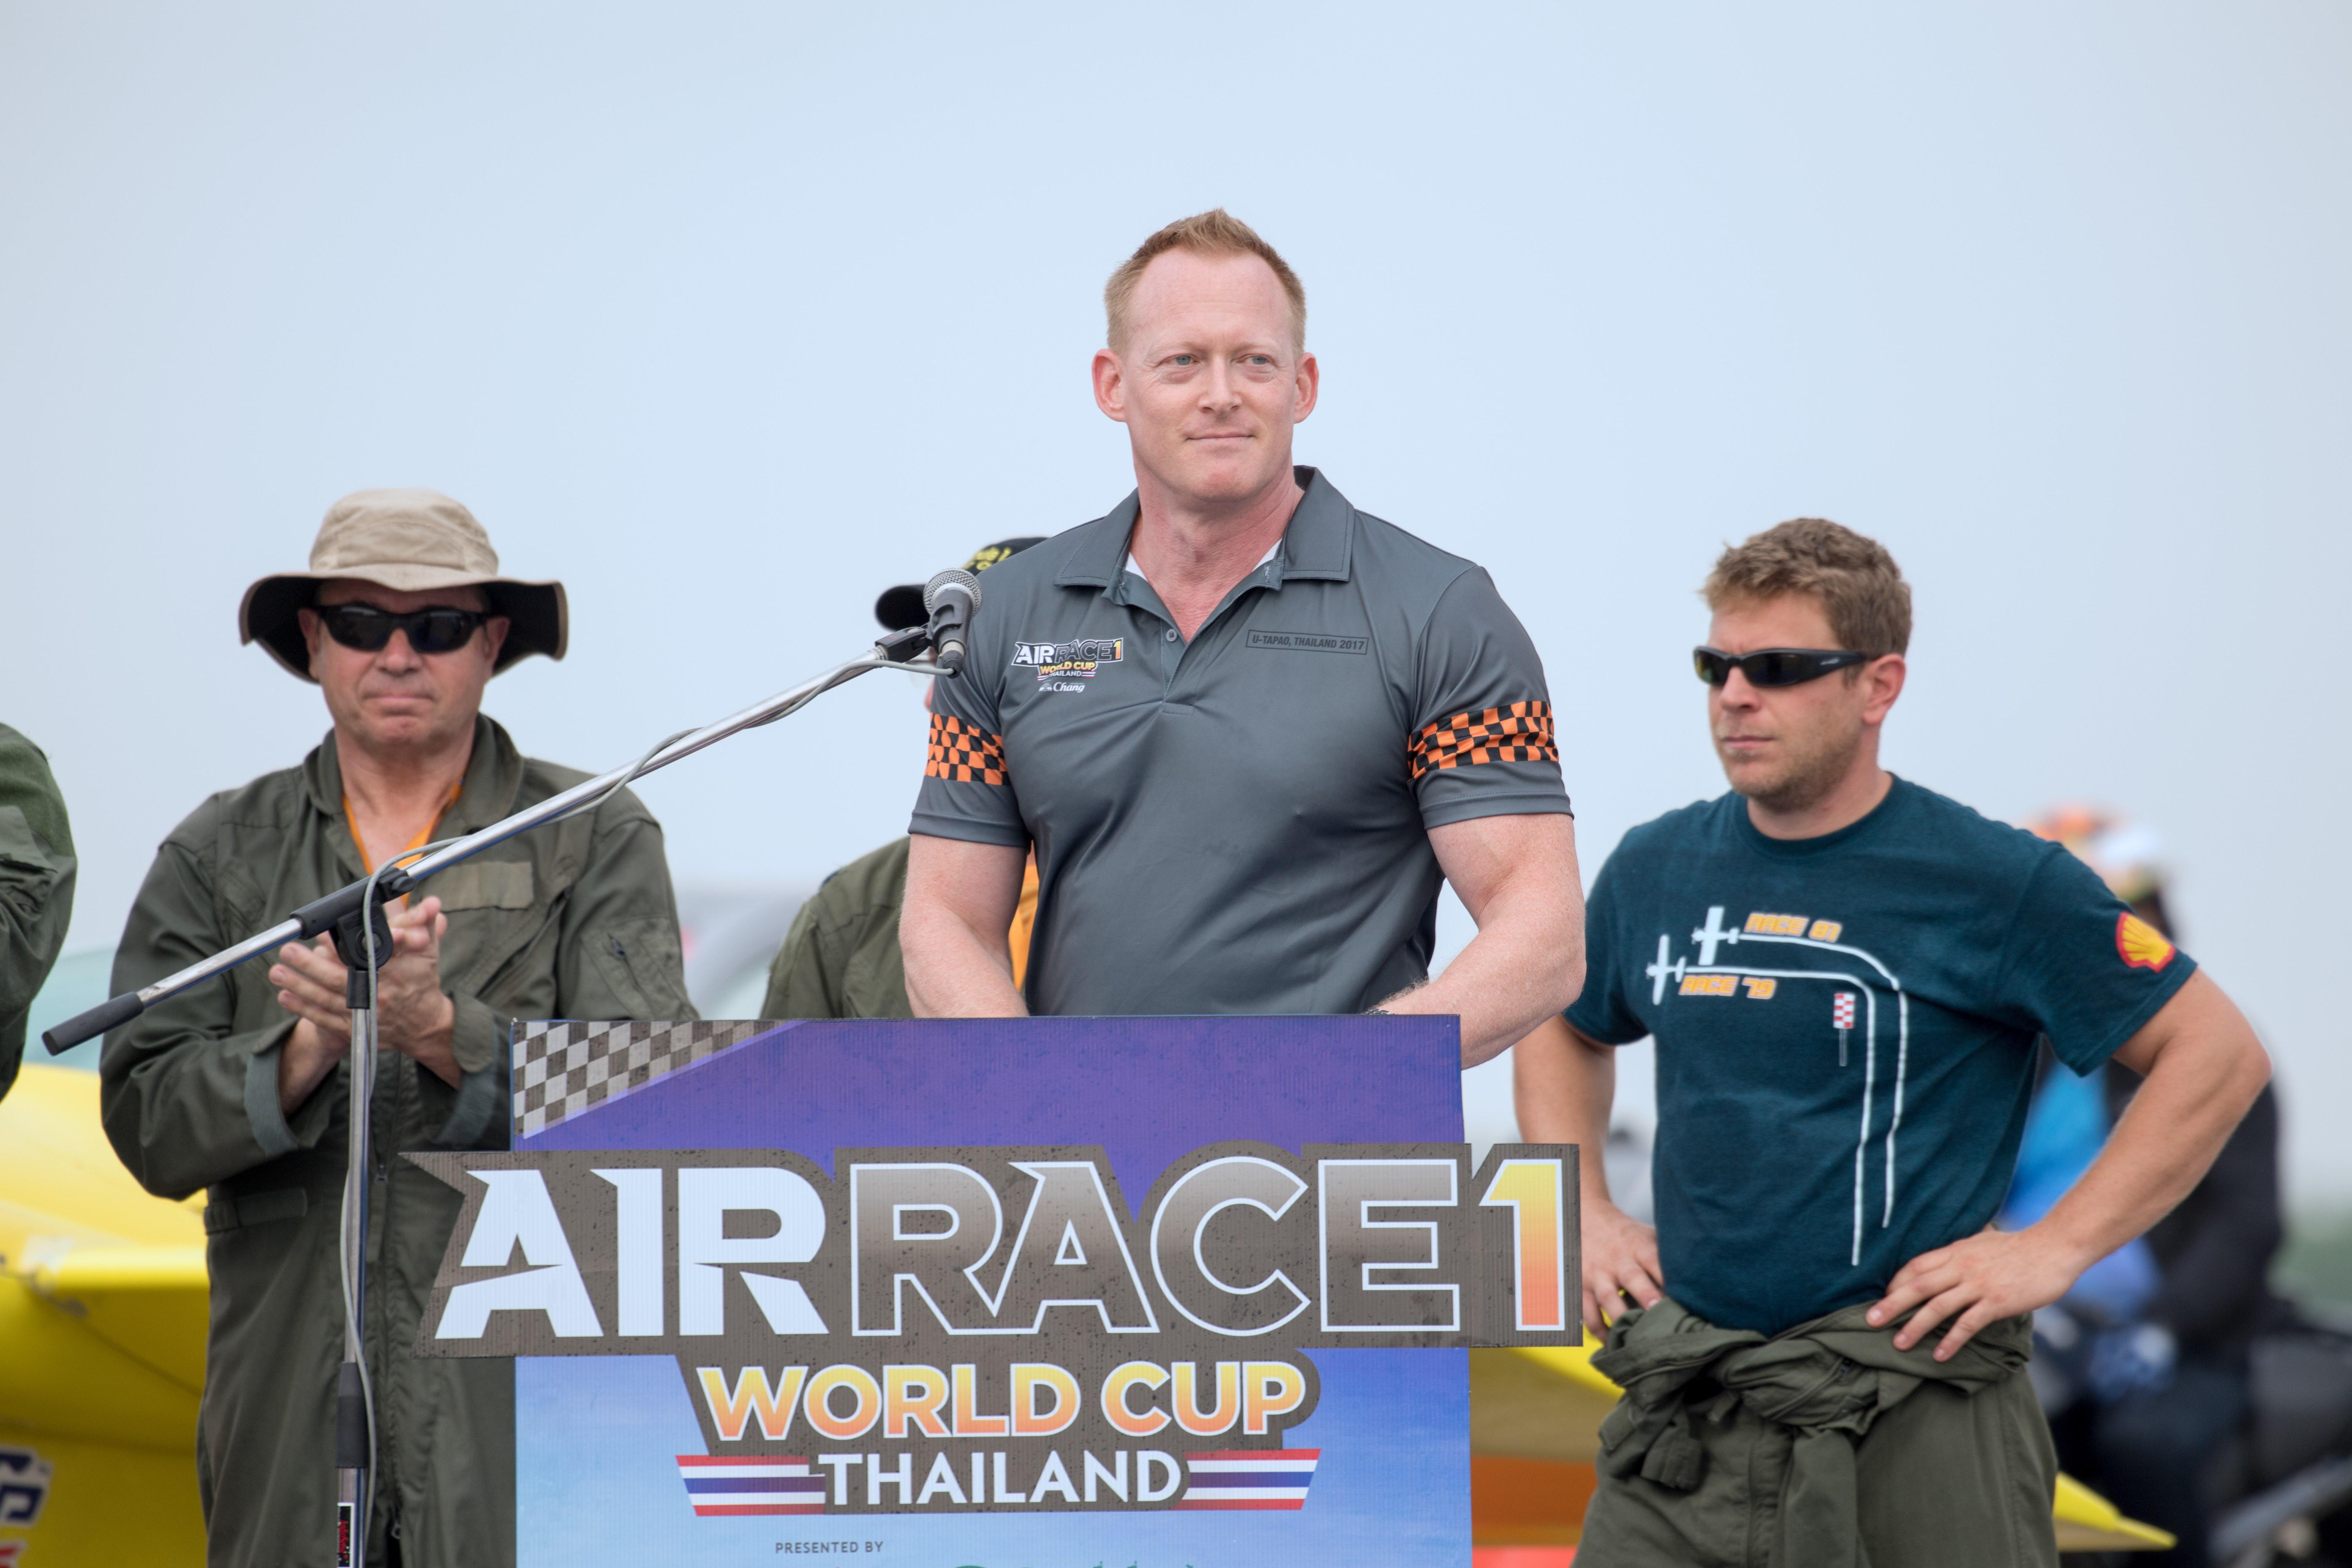 Jeff Zaltman speaking at the Air Race 1 World Cup in Thailand last November